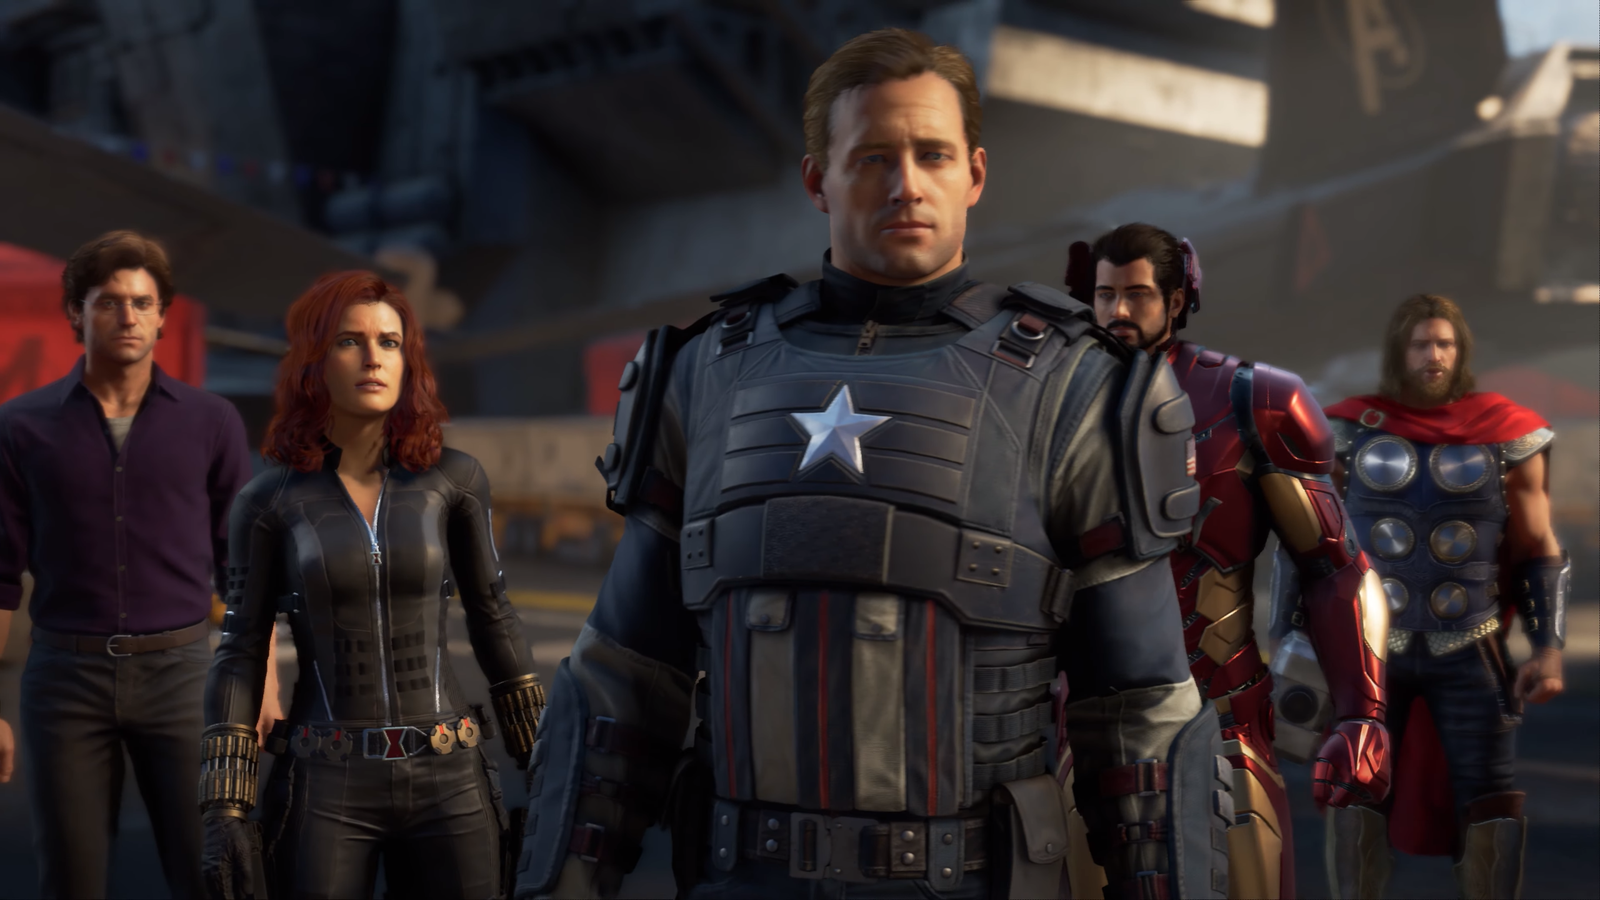 Watch the First Trailer for Square-Enix's Avengers Game